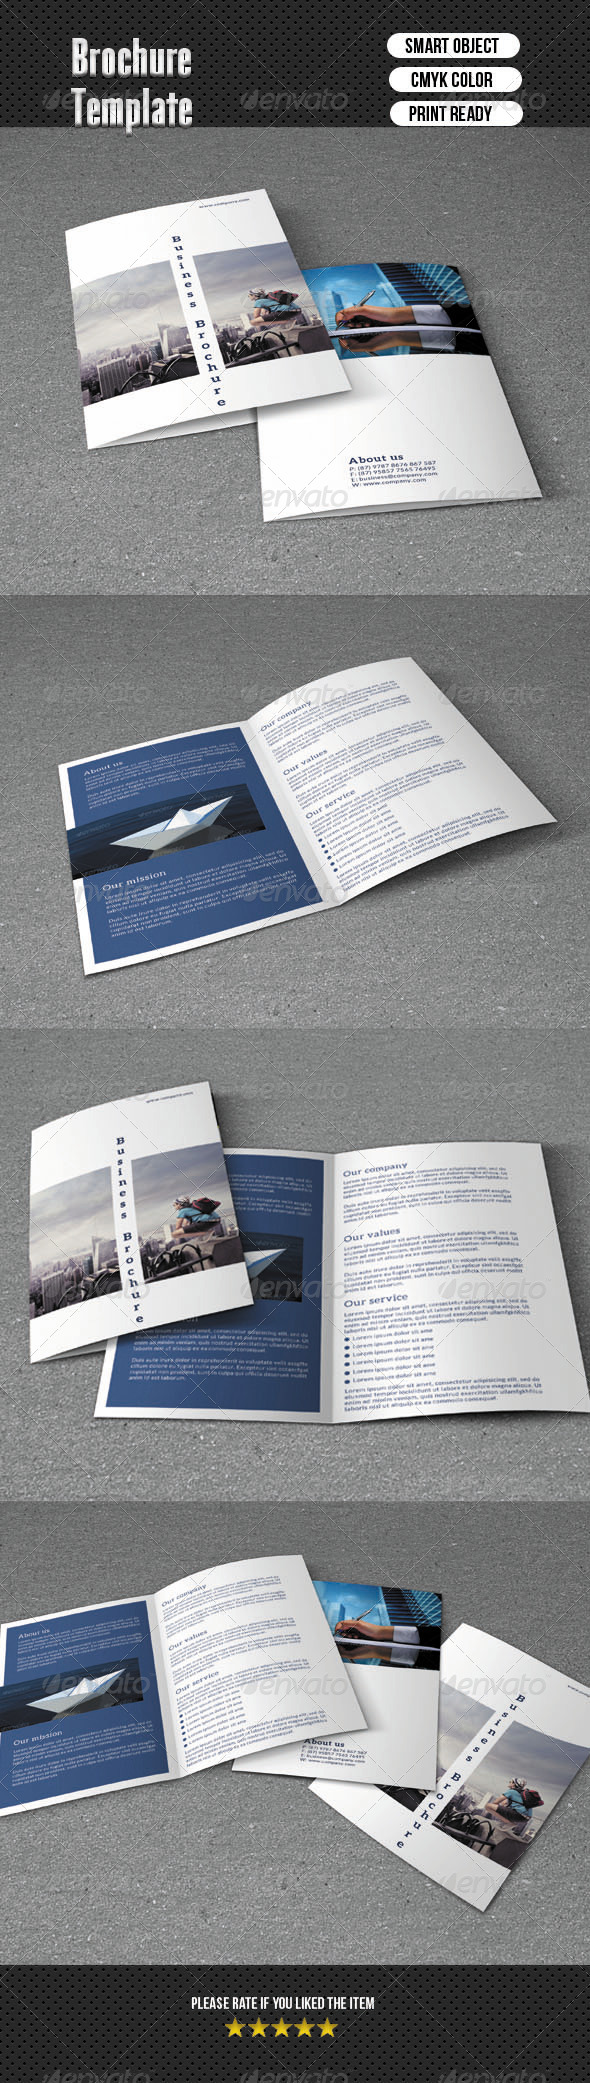 Bifold Brochure-Business - Corporate Brochures